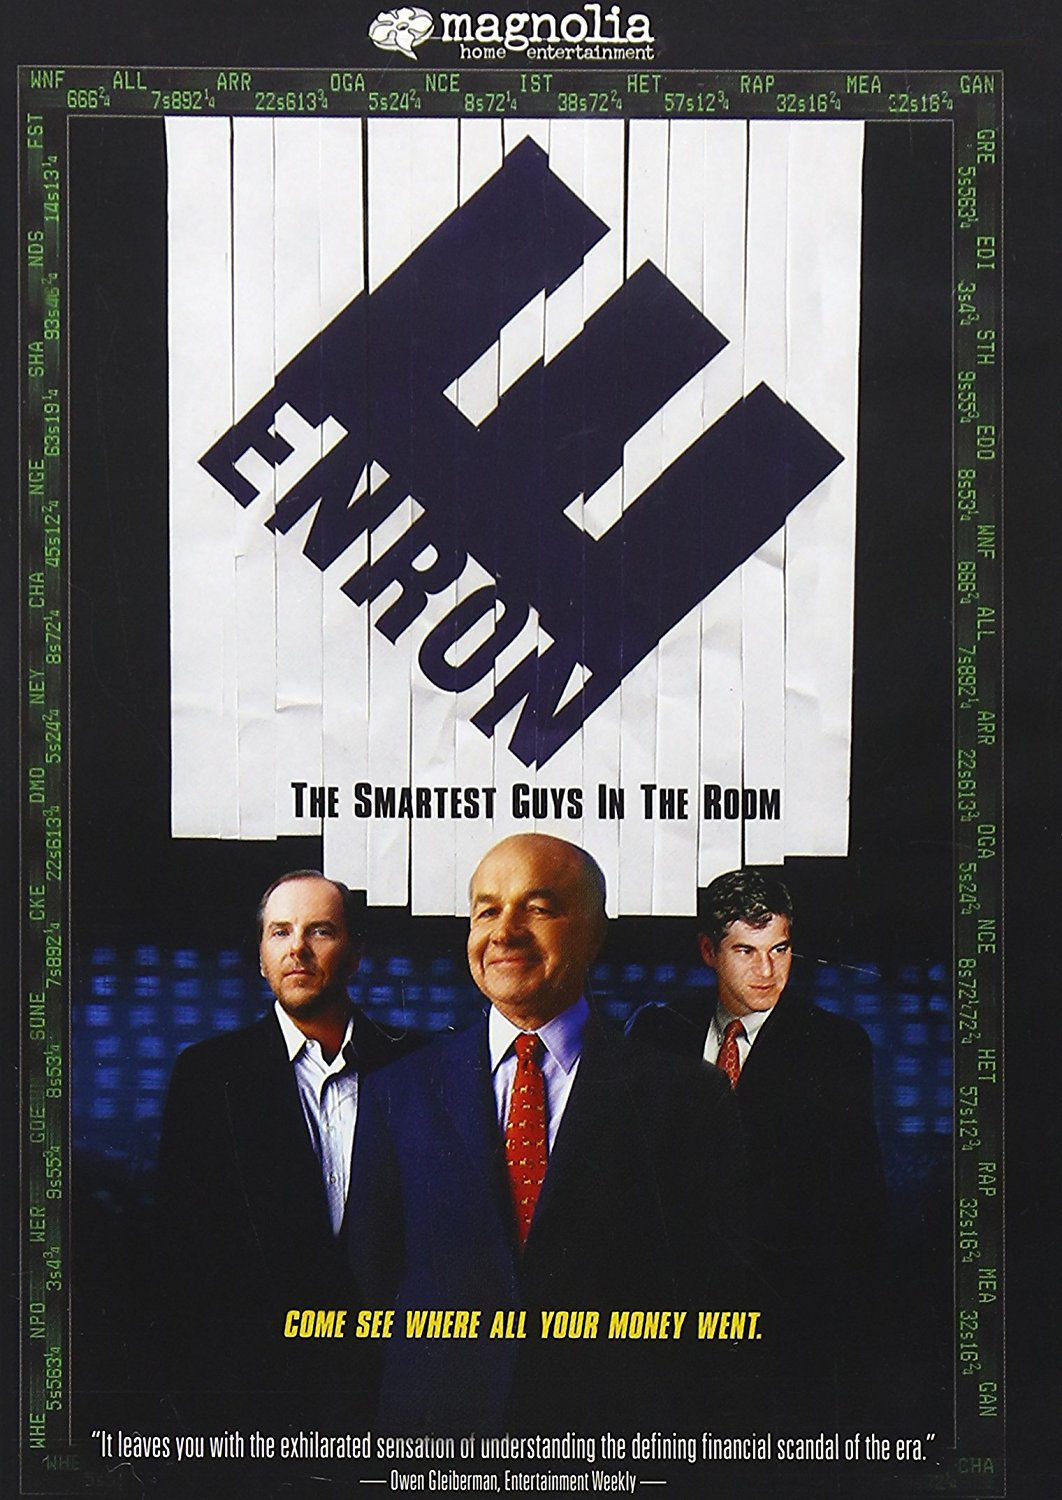 Enron - The Smartest Guys in the Room - Notes